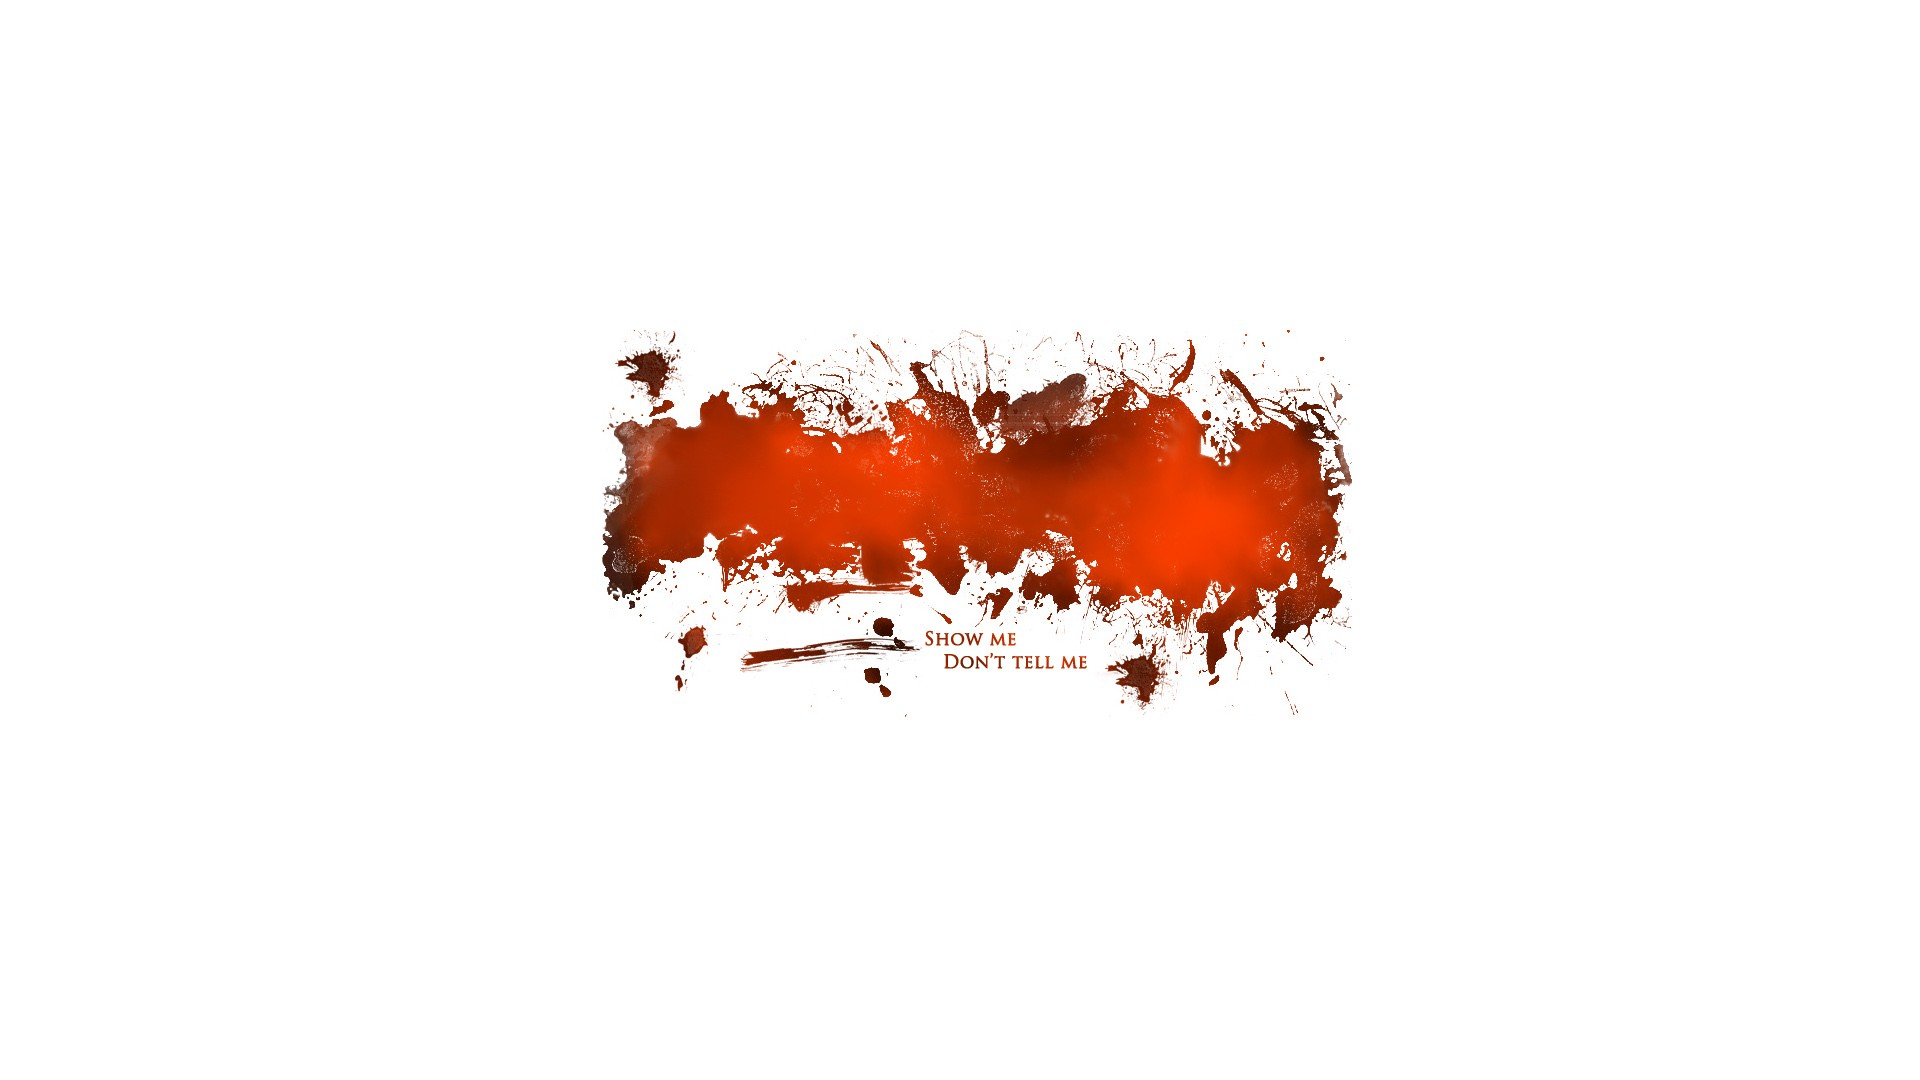 Abstract White Orange Design Digital Art Artwork Backgrounds Graphic Simple Graphics Colors Burn Miladvaziri Wallpaper